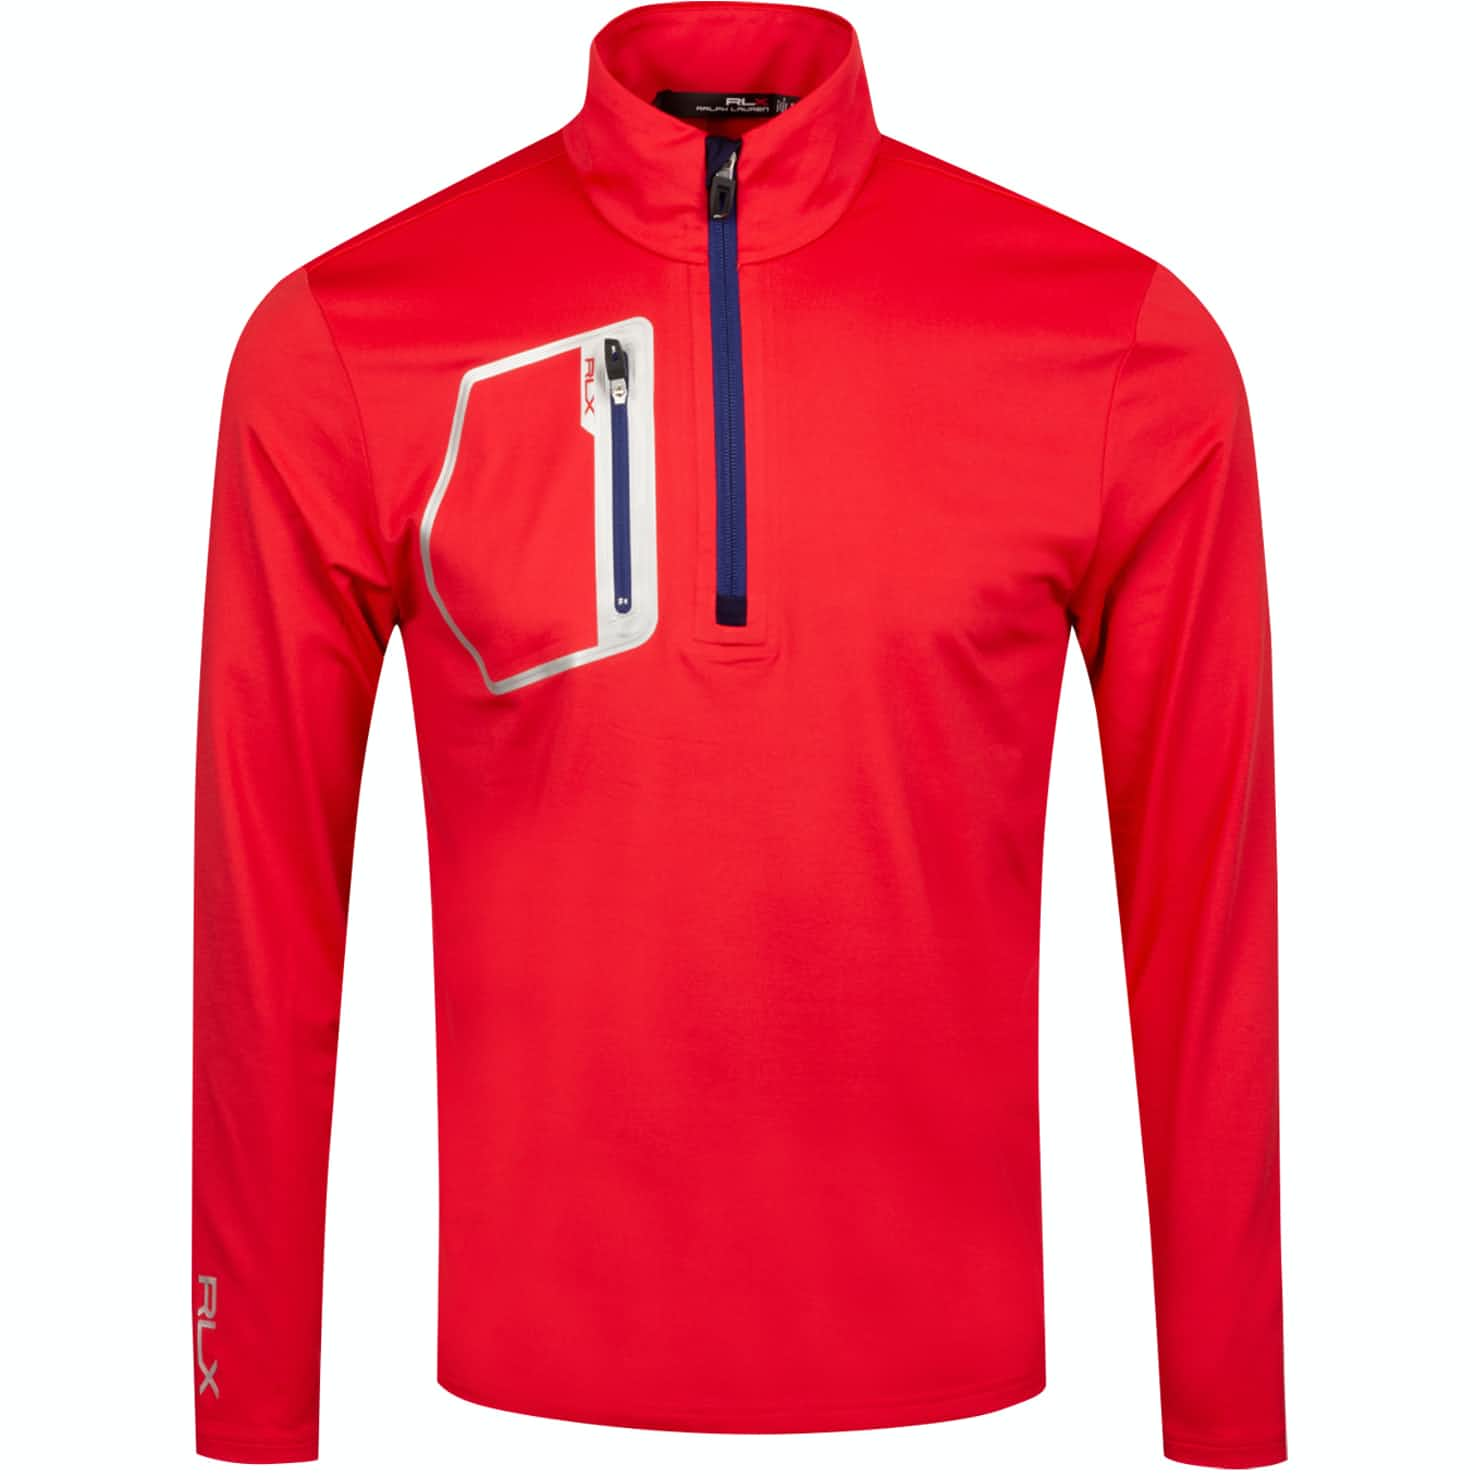 Brushback Tech Jersey Deep Orangey Red - AW19